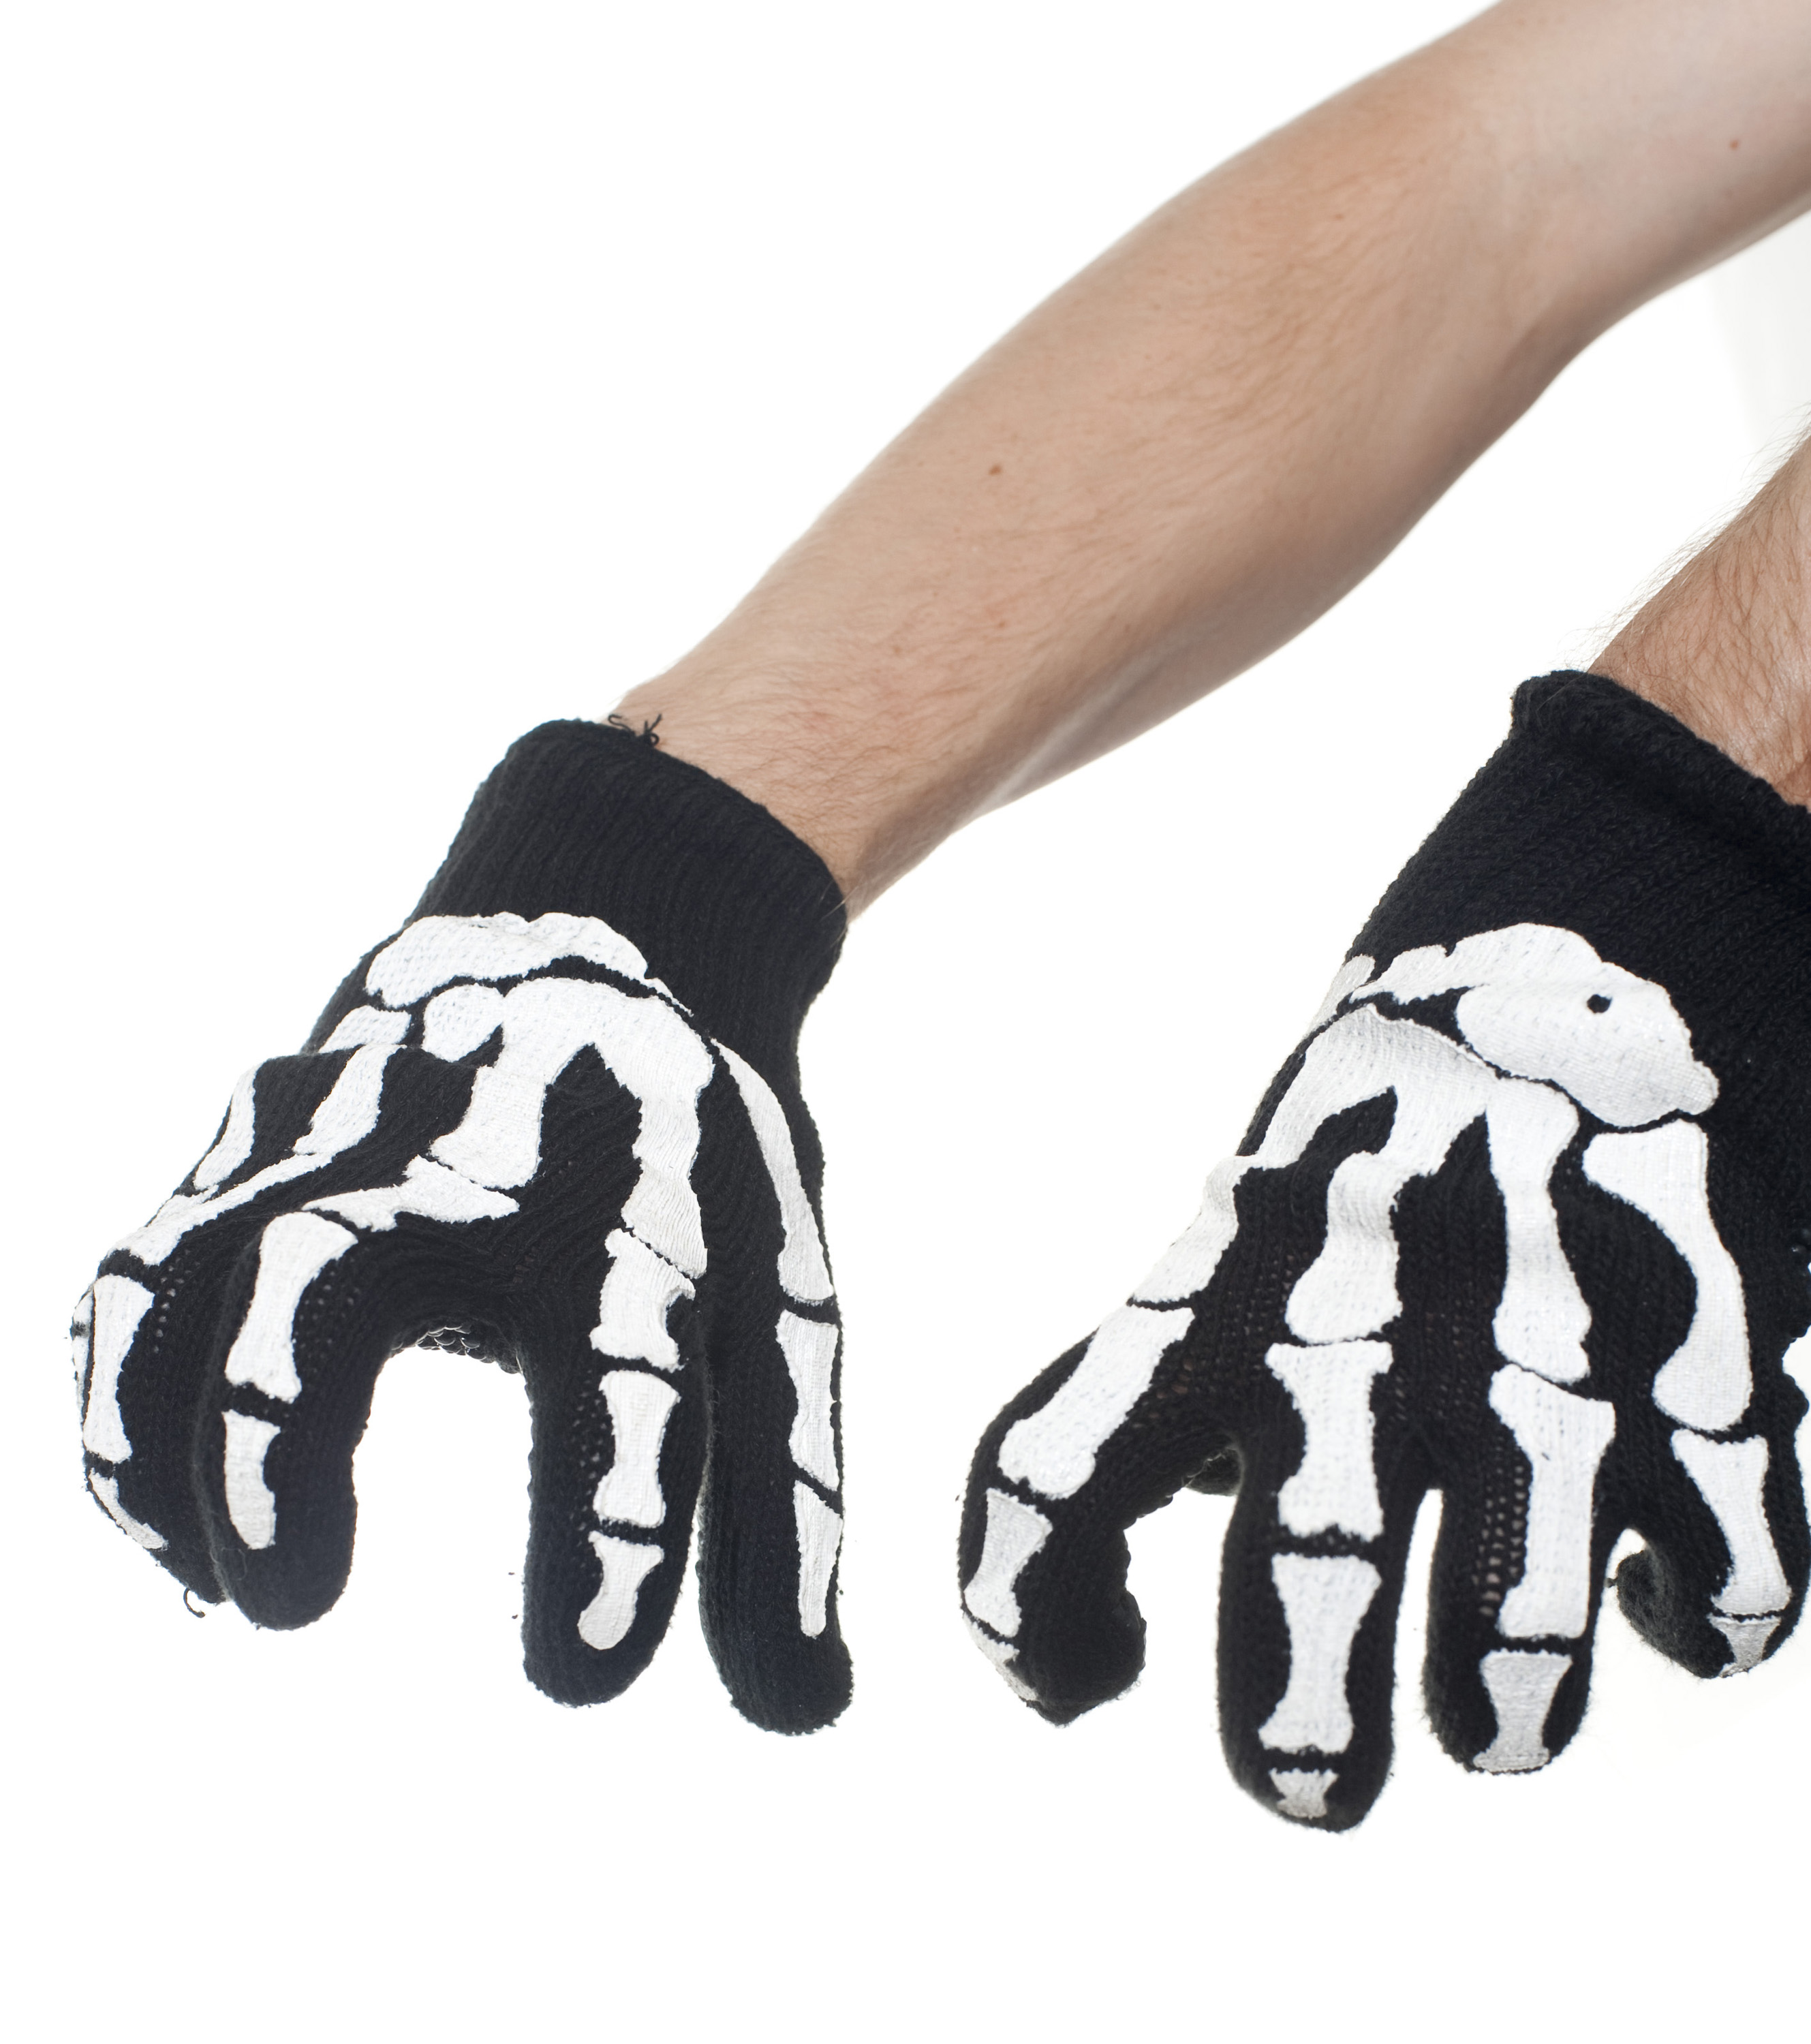 Keywords: hand glove bone